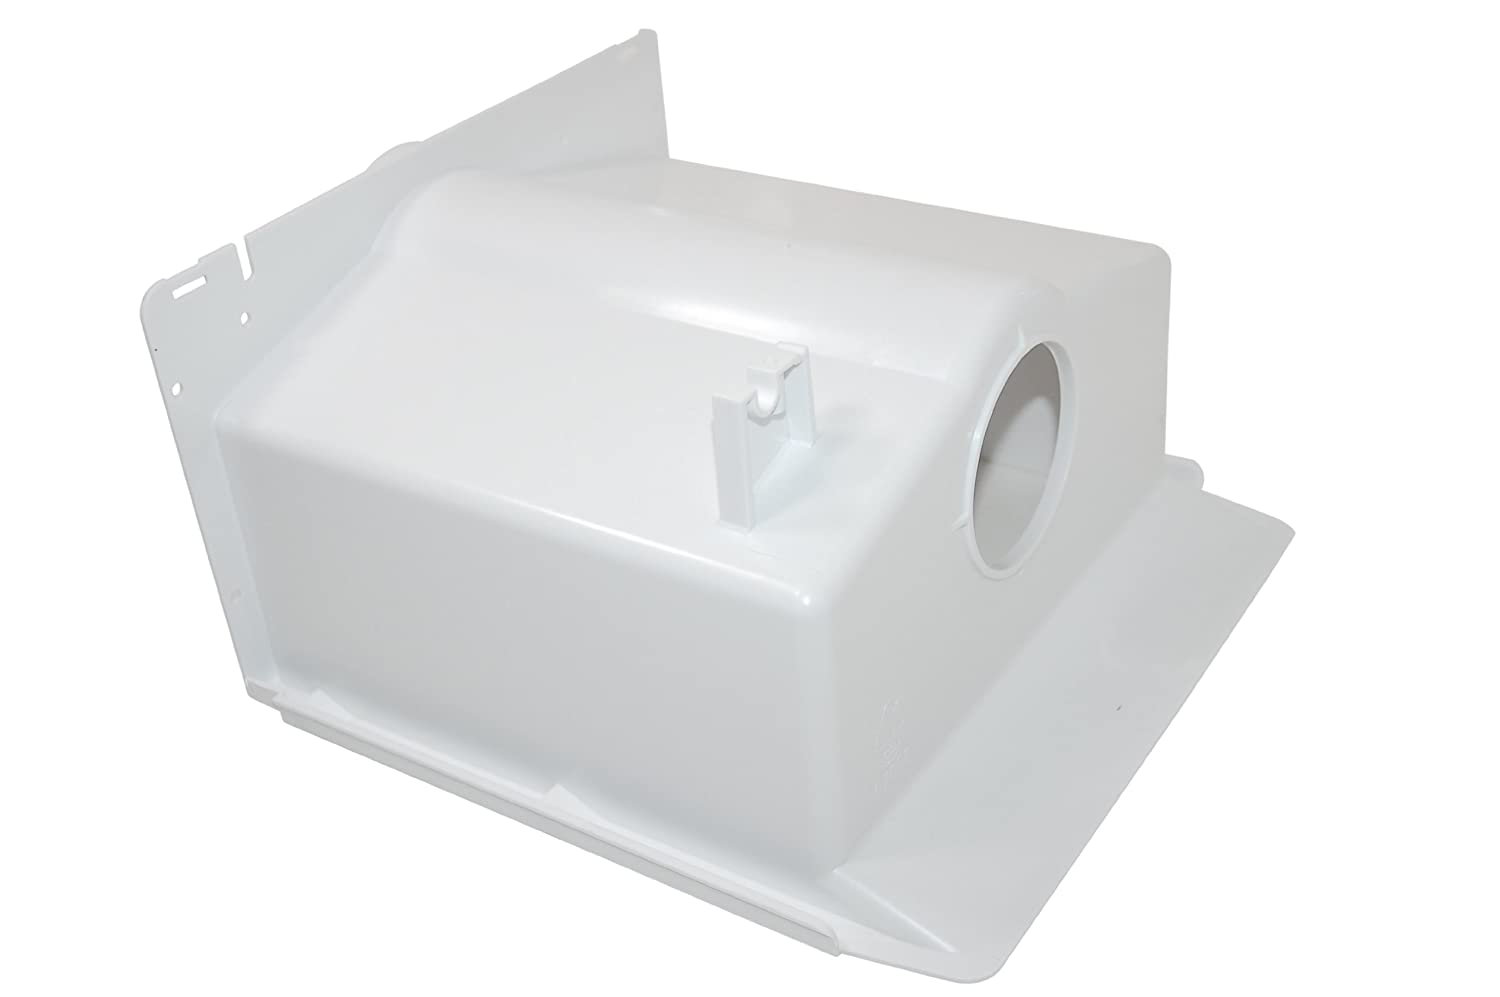 Whirlpool Admiral Amana Hotpoint Maytag Whirlpool Refrigeration Ice Cube Container. Genuine part number 481241848977